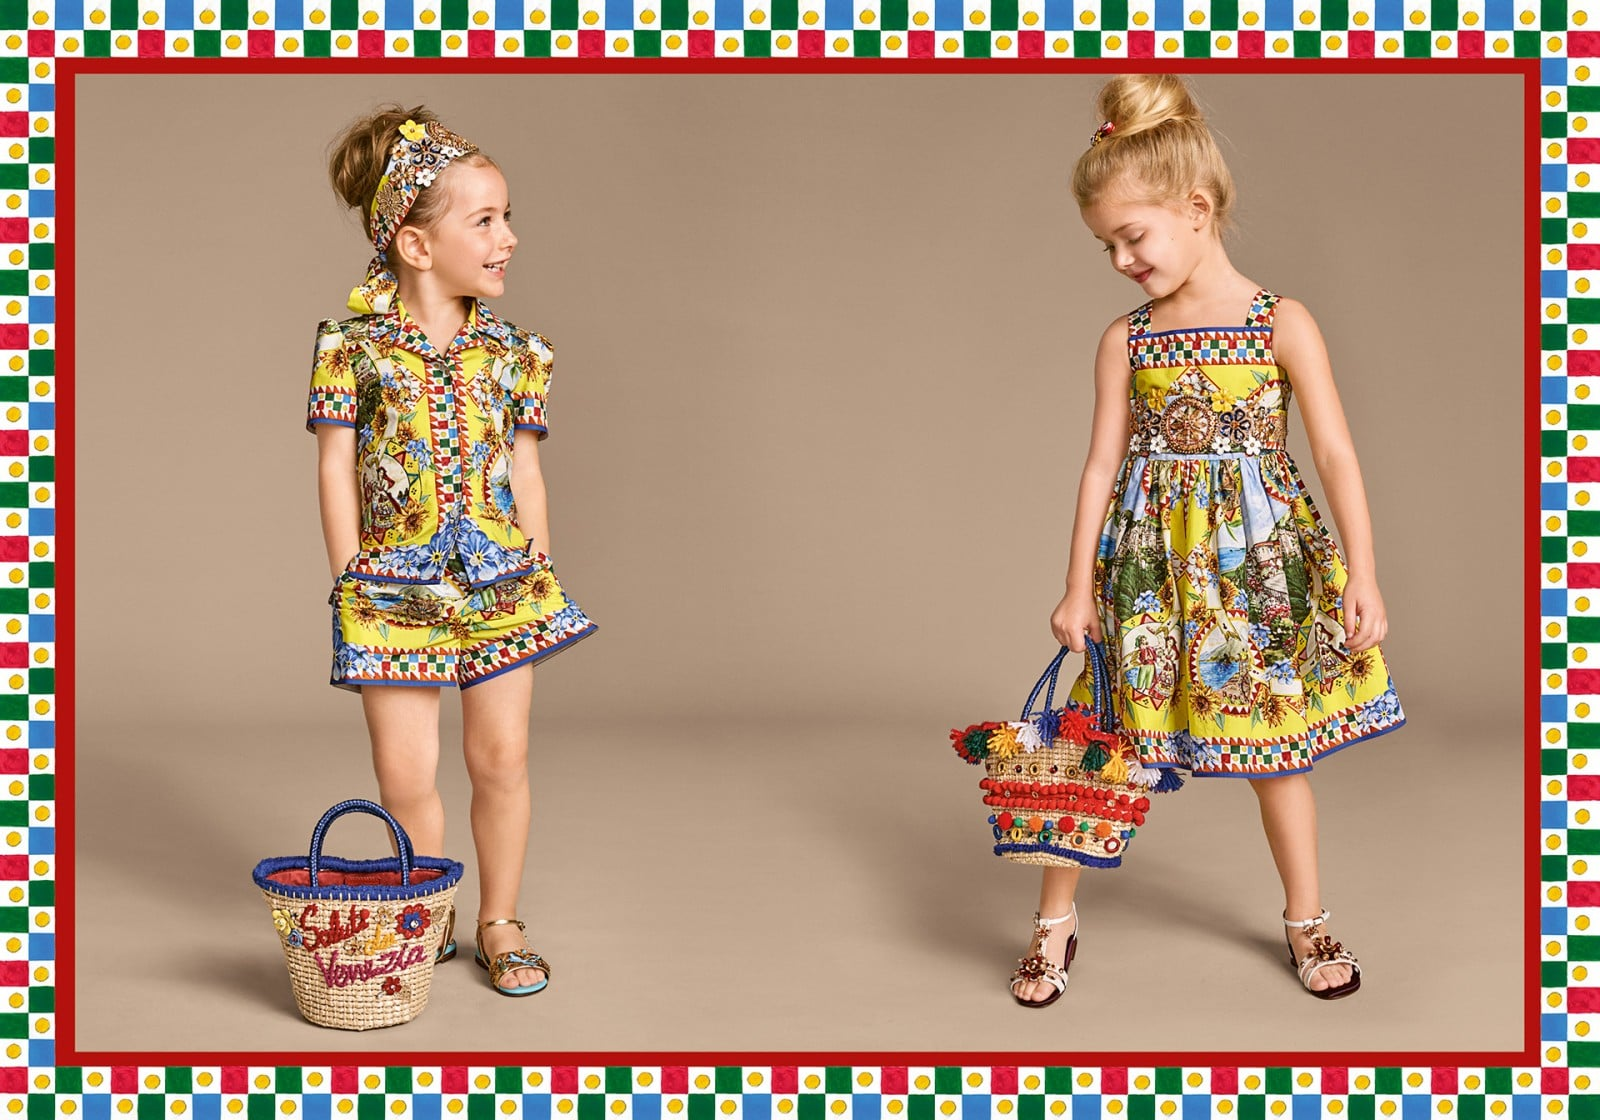 dolce-and-gabbana-summer-2016-child-collection-421-1600x1120.jpg